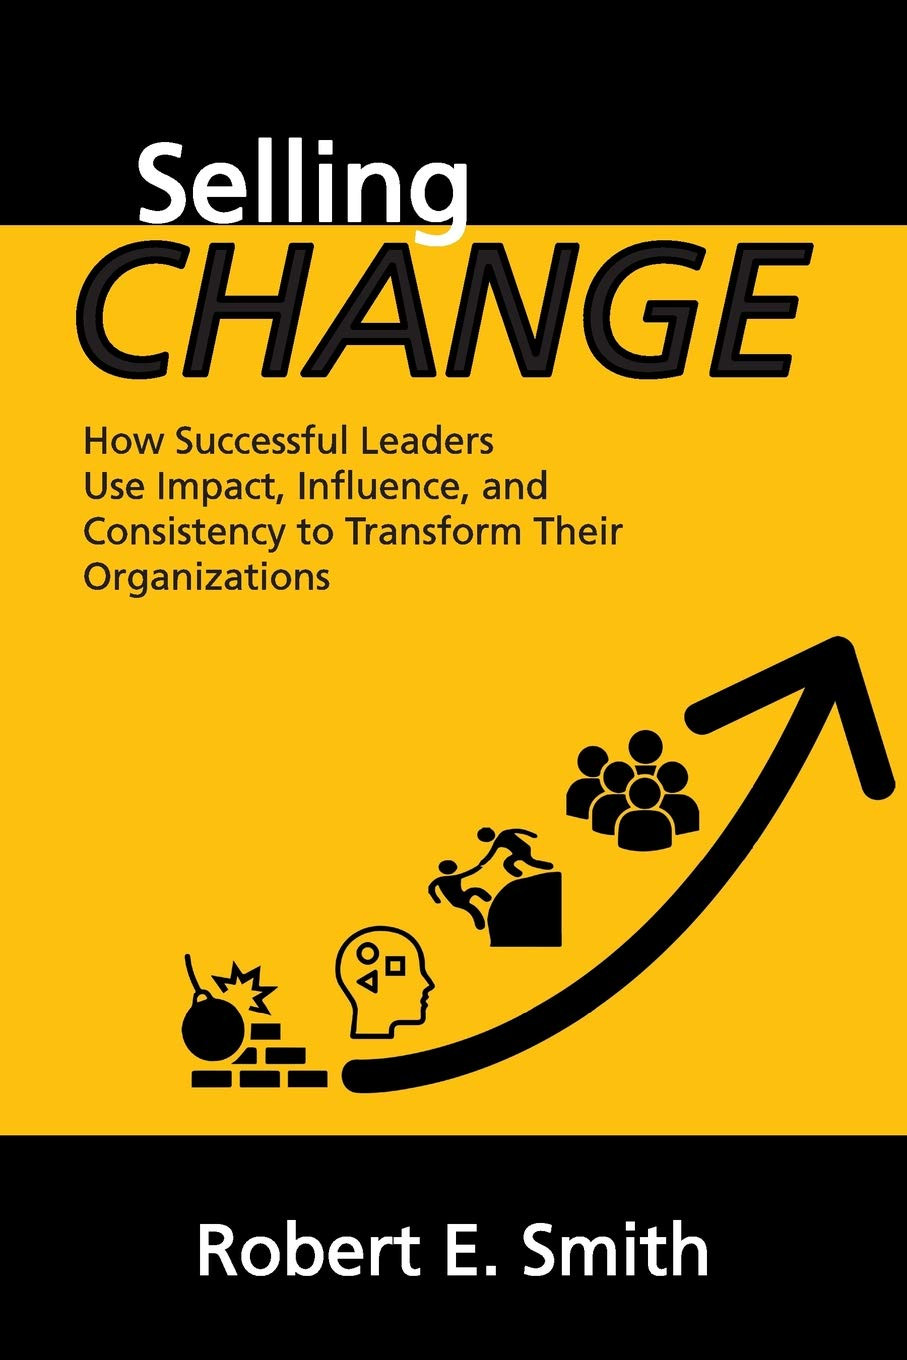 Selling Change: How Successful Leaders Use Impact, Influence, and Consistency to Transform Their Organizations